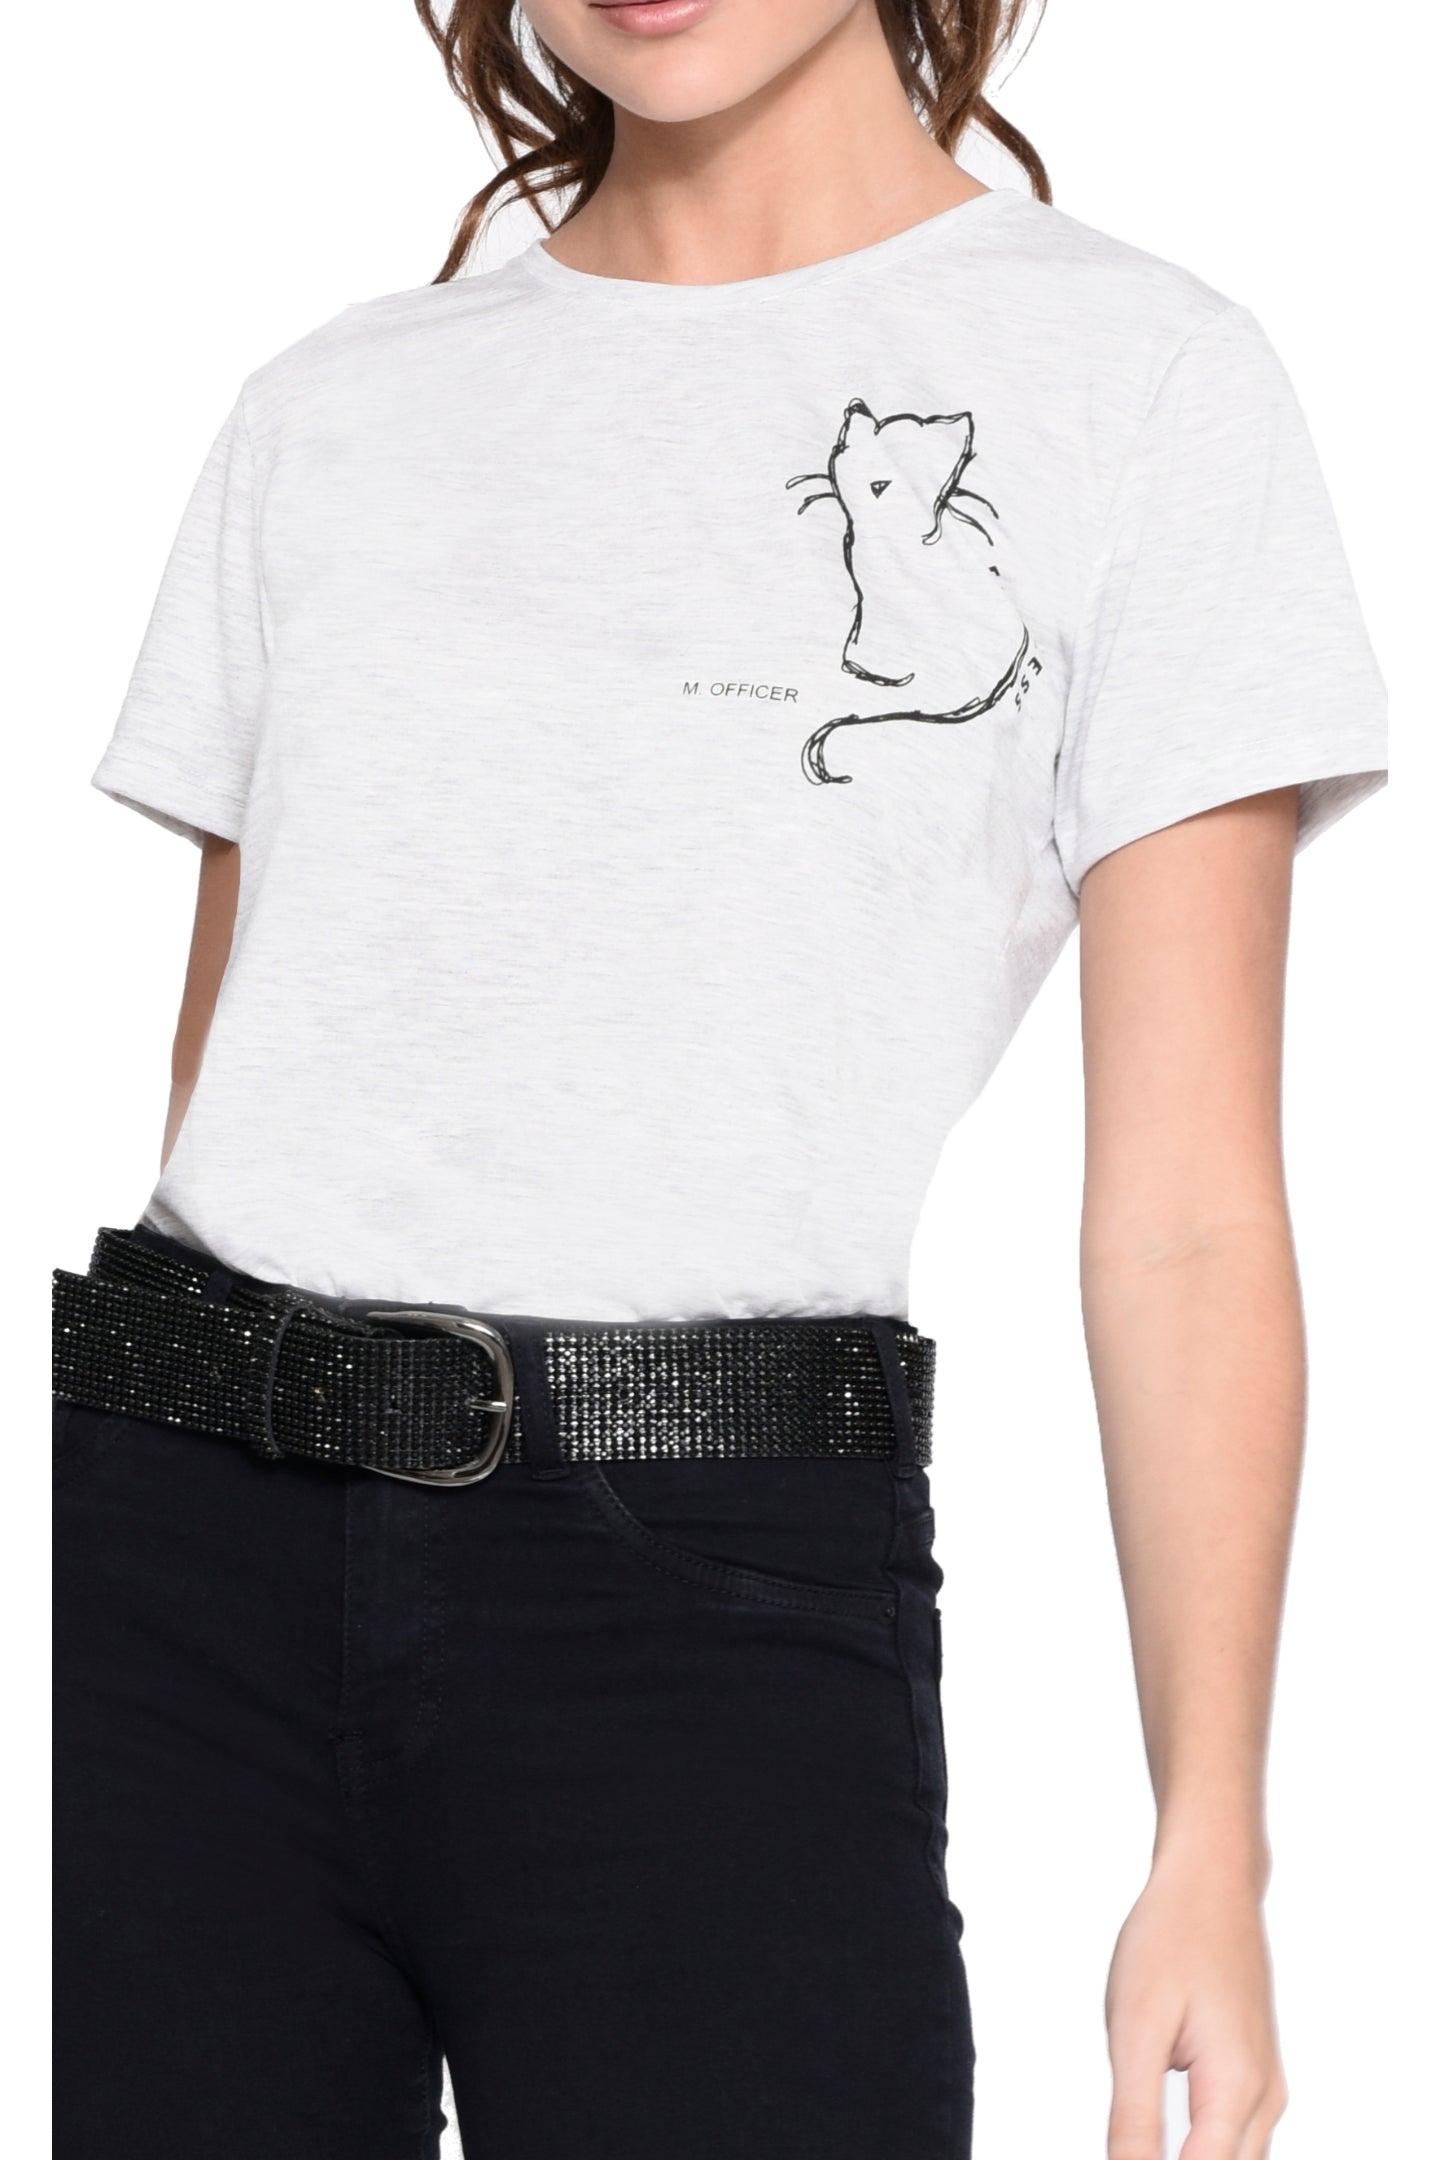 T-SHIRT  BASIC  M/C SILK  GATO